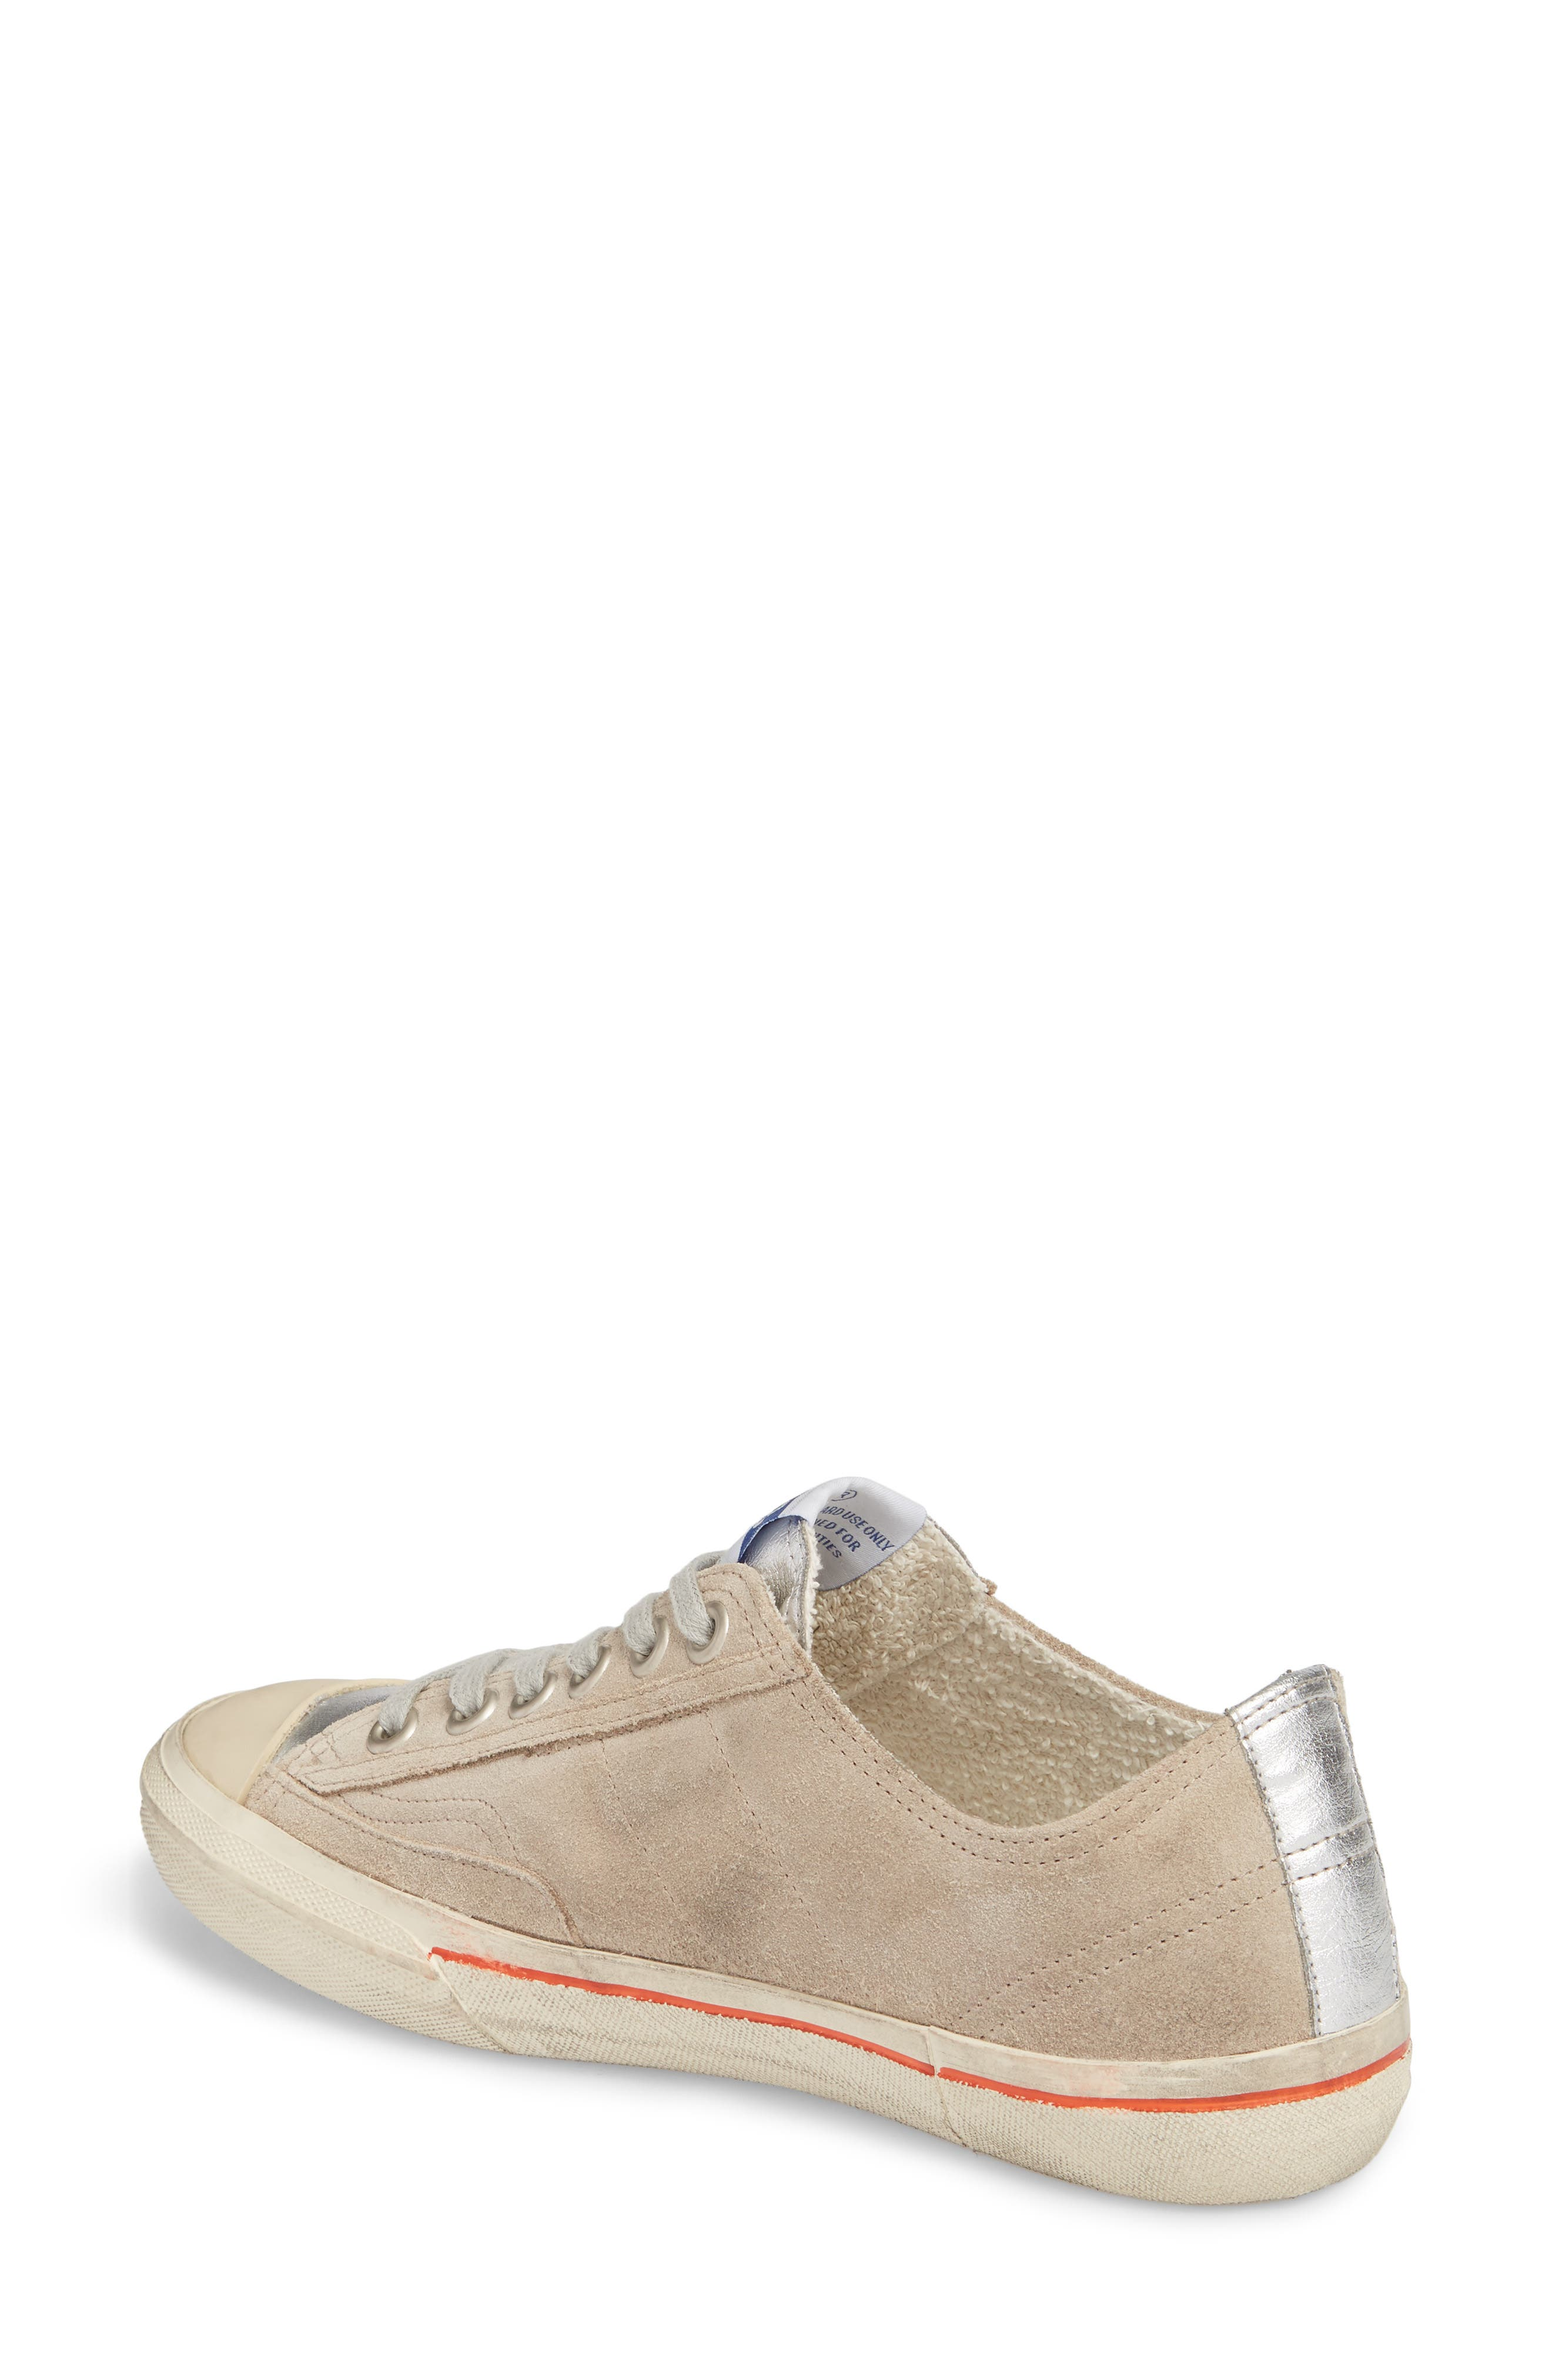 V-Star 2 Low Top Sneaker,                             Alternate thumbnail 2, color,                             Grey